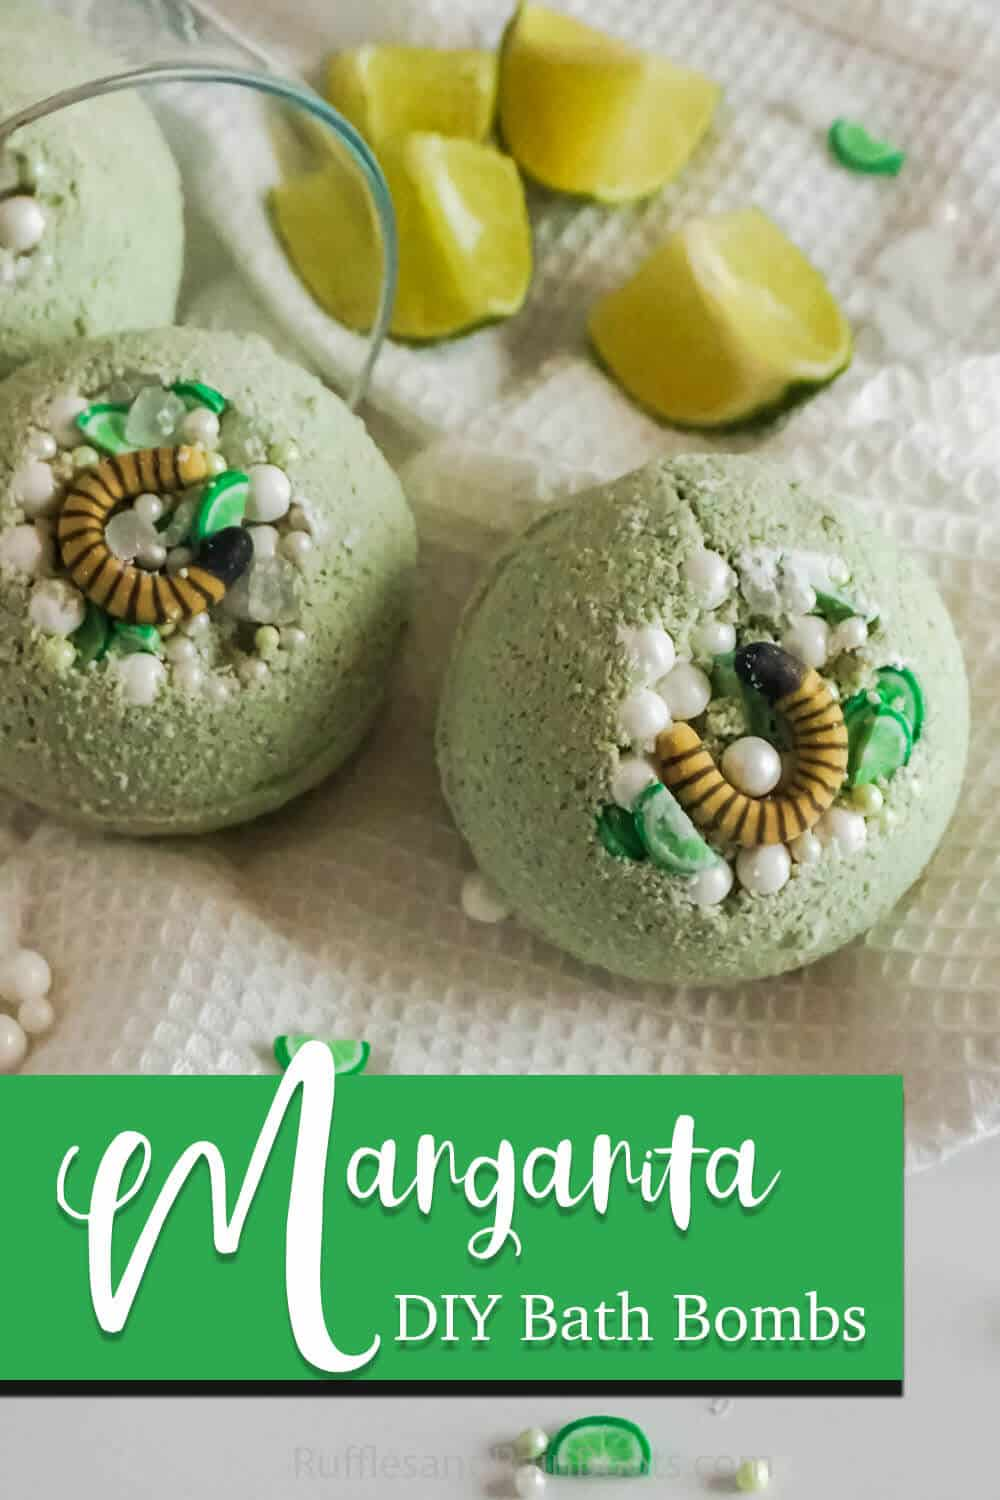 simple bath bomb recipe with sprinkles for a gift idea with text which reads margarita diy bath bombs